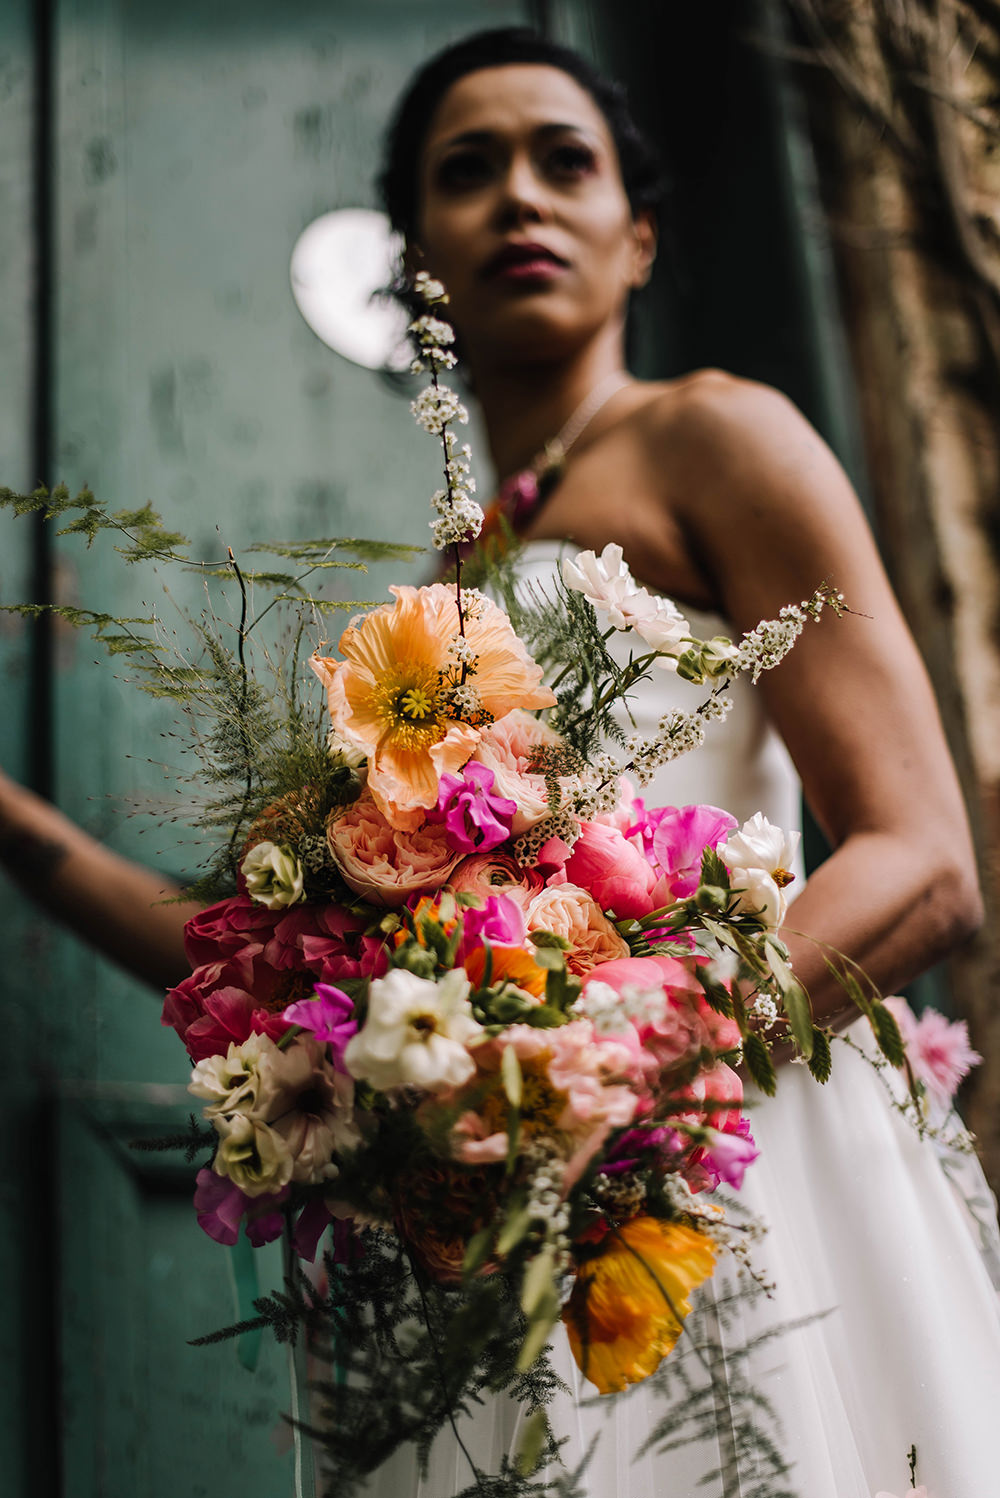 Bouquet Flowers Bride Bridal Pink Poppy Rose Foliage Greenery Orange Coral Floral Wedding Ideas Birgitta Zoutman Photography